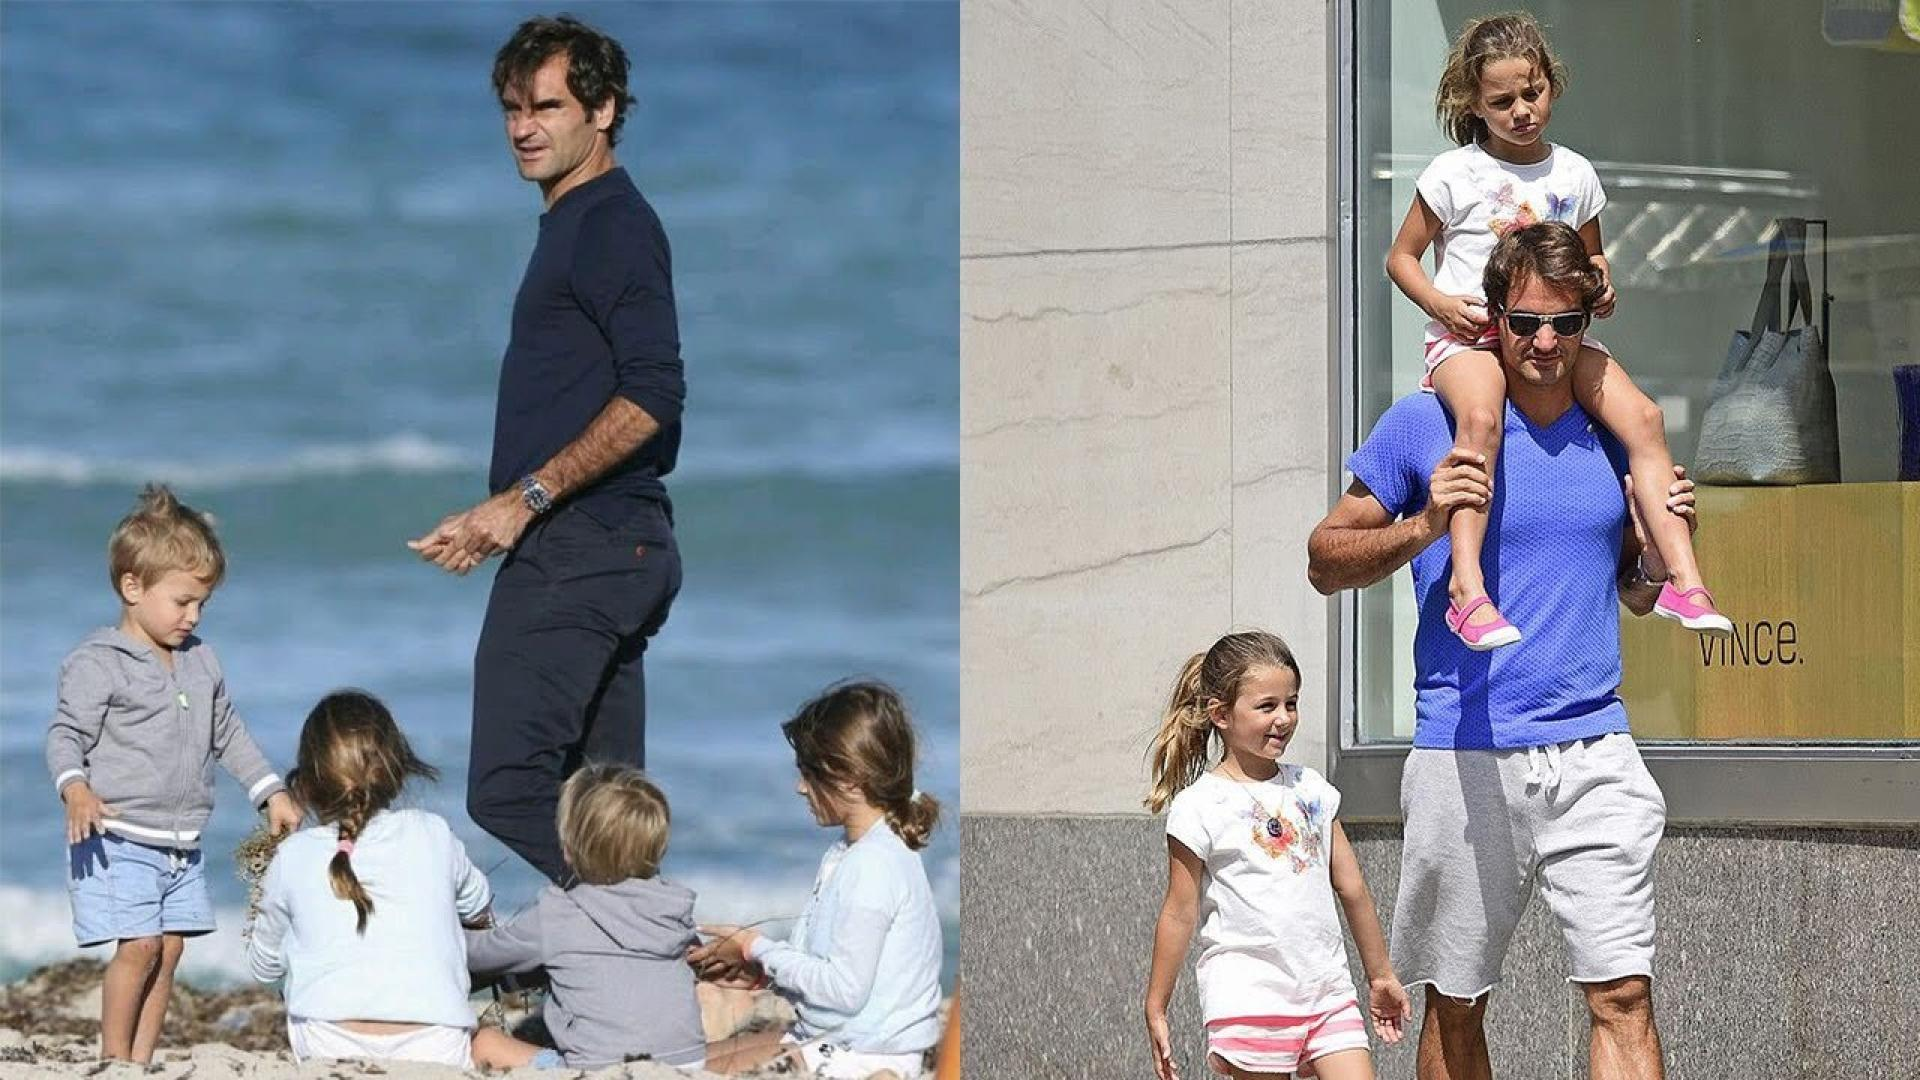 Roger Federer could not sleep because of his children, was still happy - Czech player